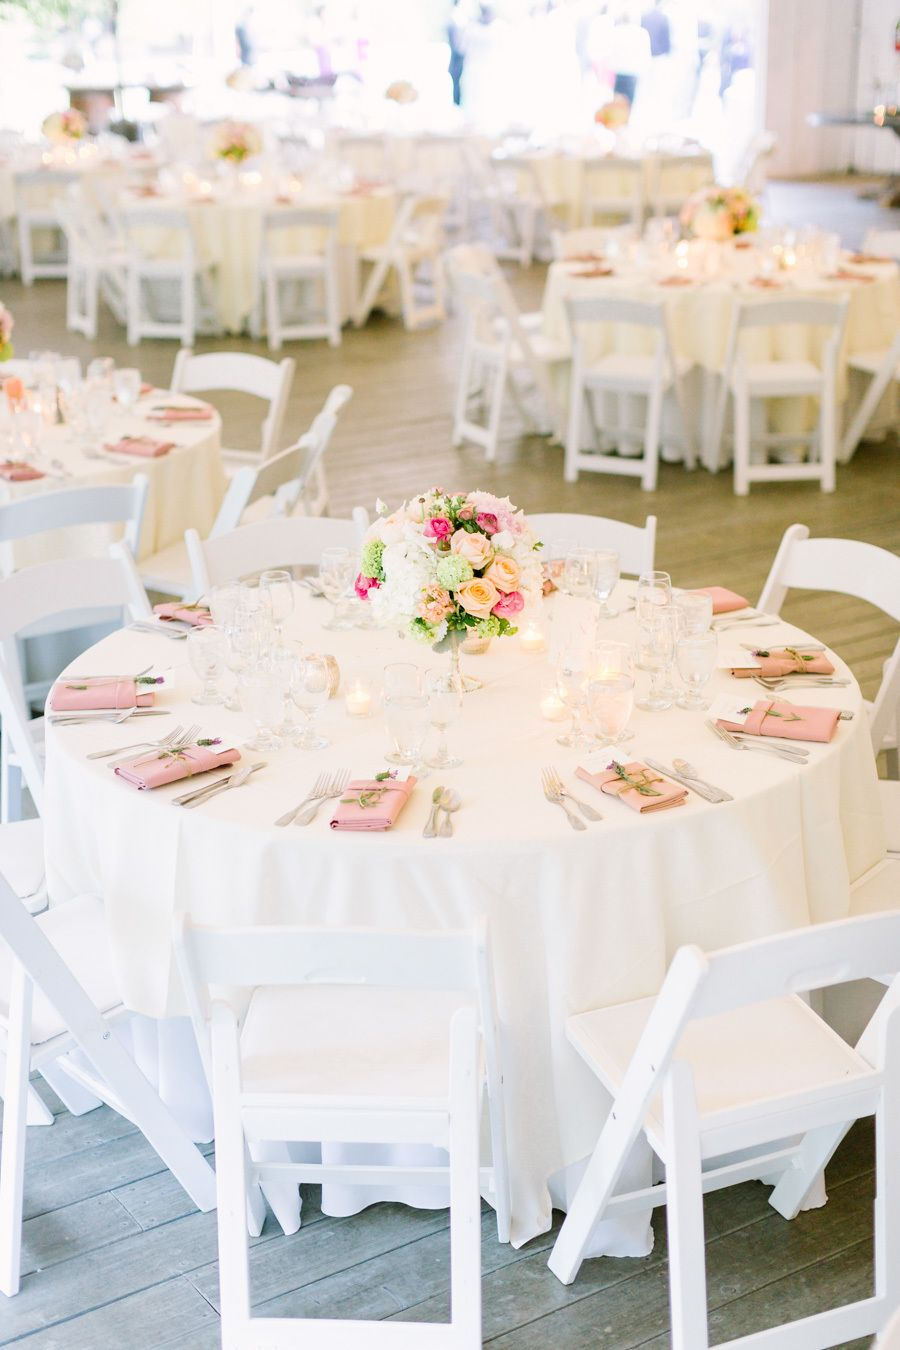 Wedding decorations white  Romantic Summer Wedding at Calamigos Ranch  Marriage Wedding